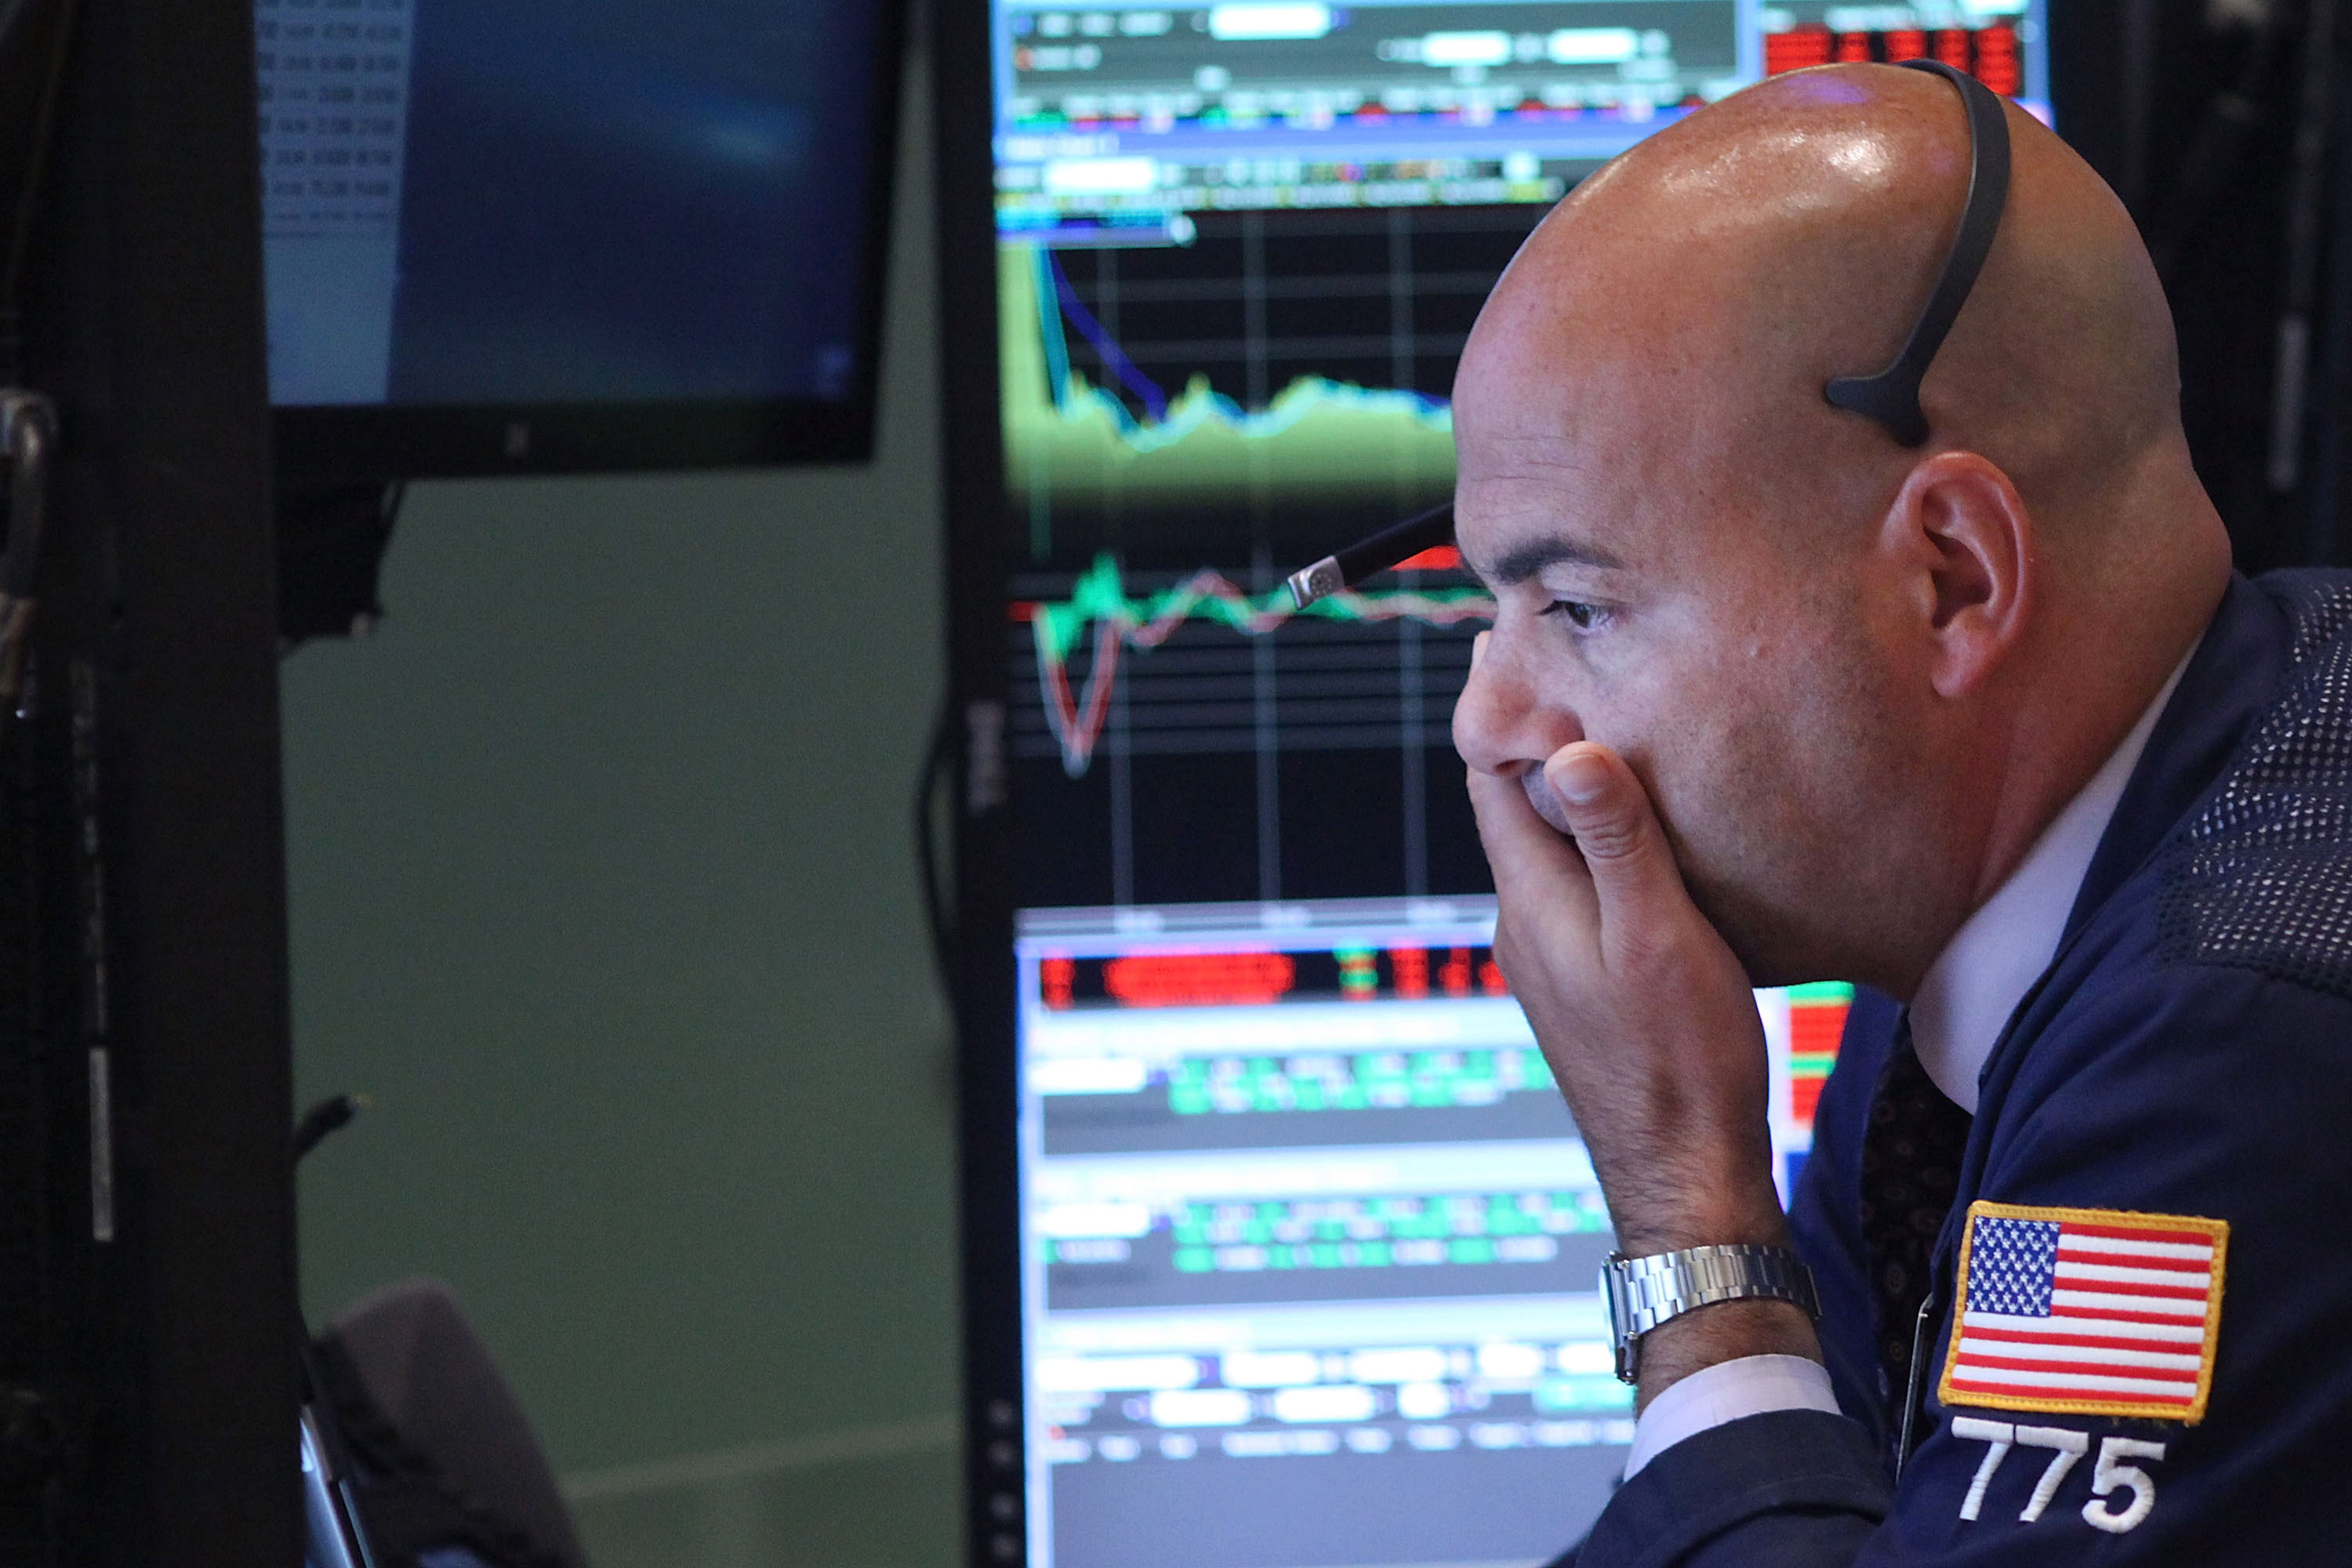 Traders react on the floor of the New York Stock Exchange on September 1, 2015 in New York City.